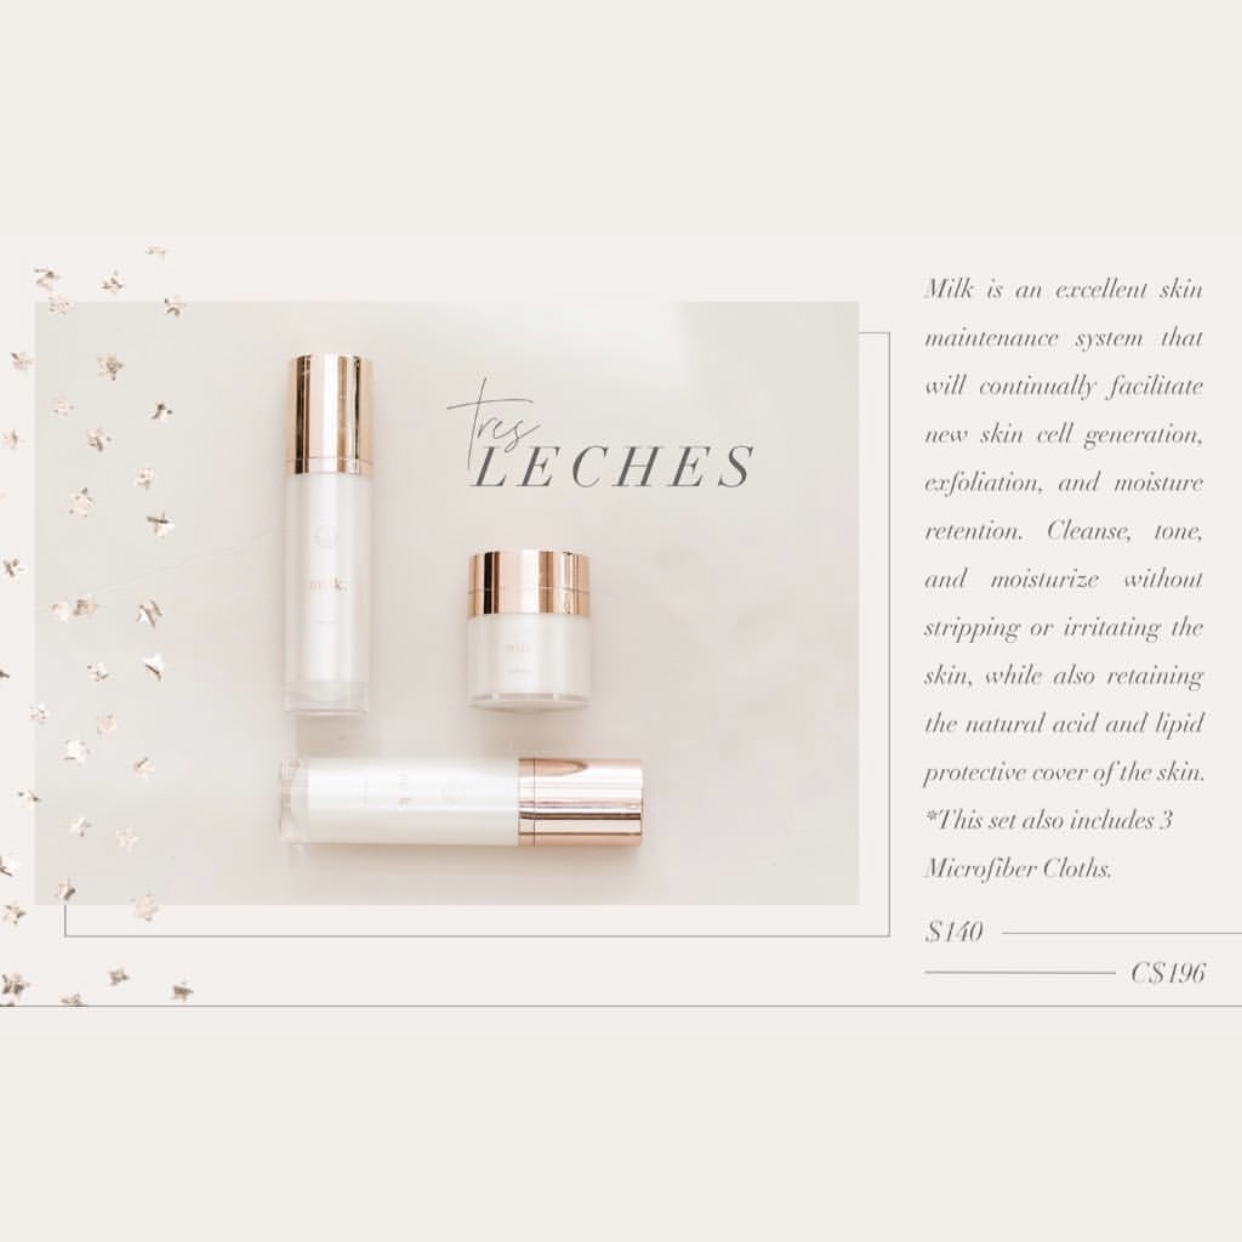 tres leches skincare bundle maskcara beauty mothers day 2019 tauritucker.com